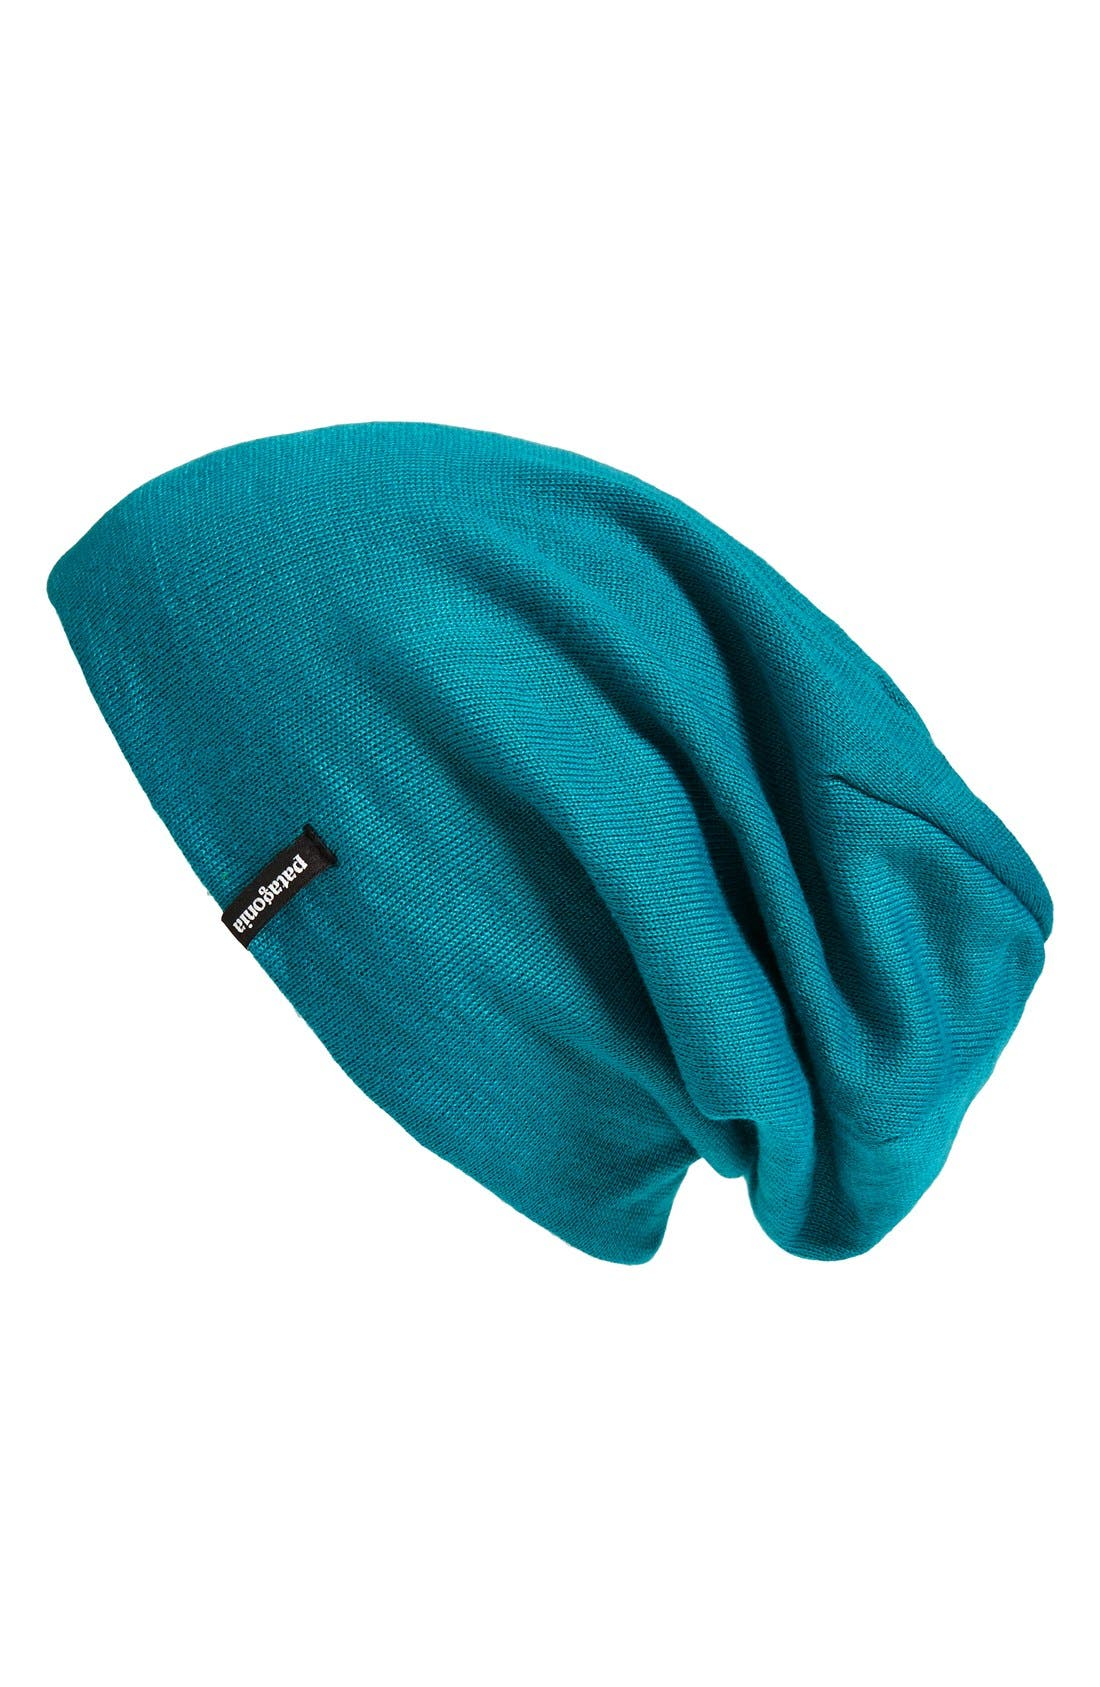 Alternate Image 1 Selected - Patagonia 'Slopestyle' Beanie